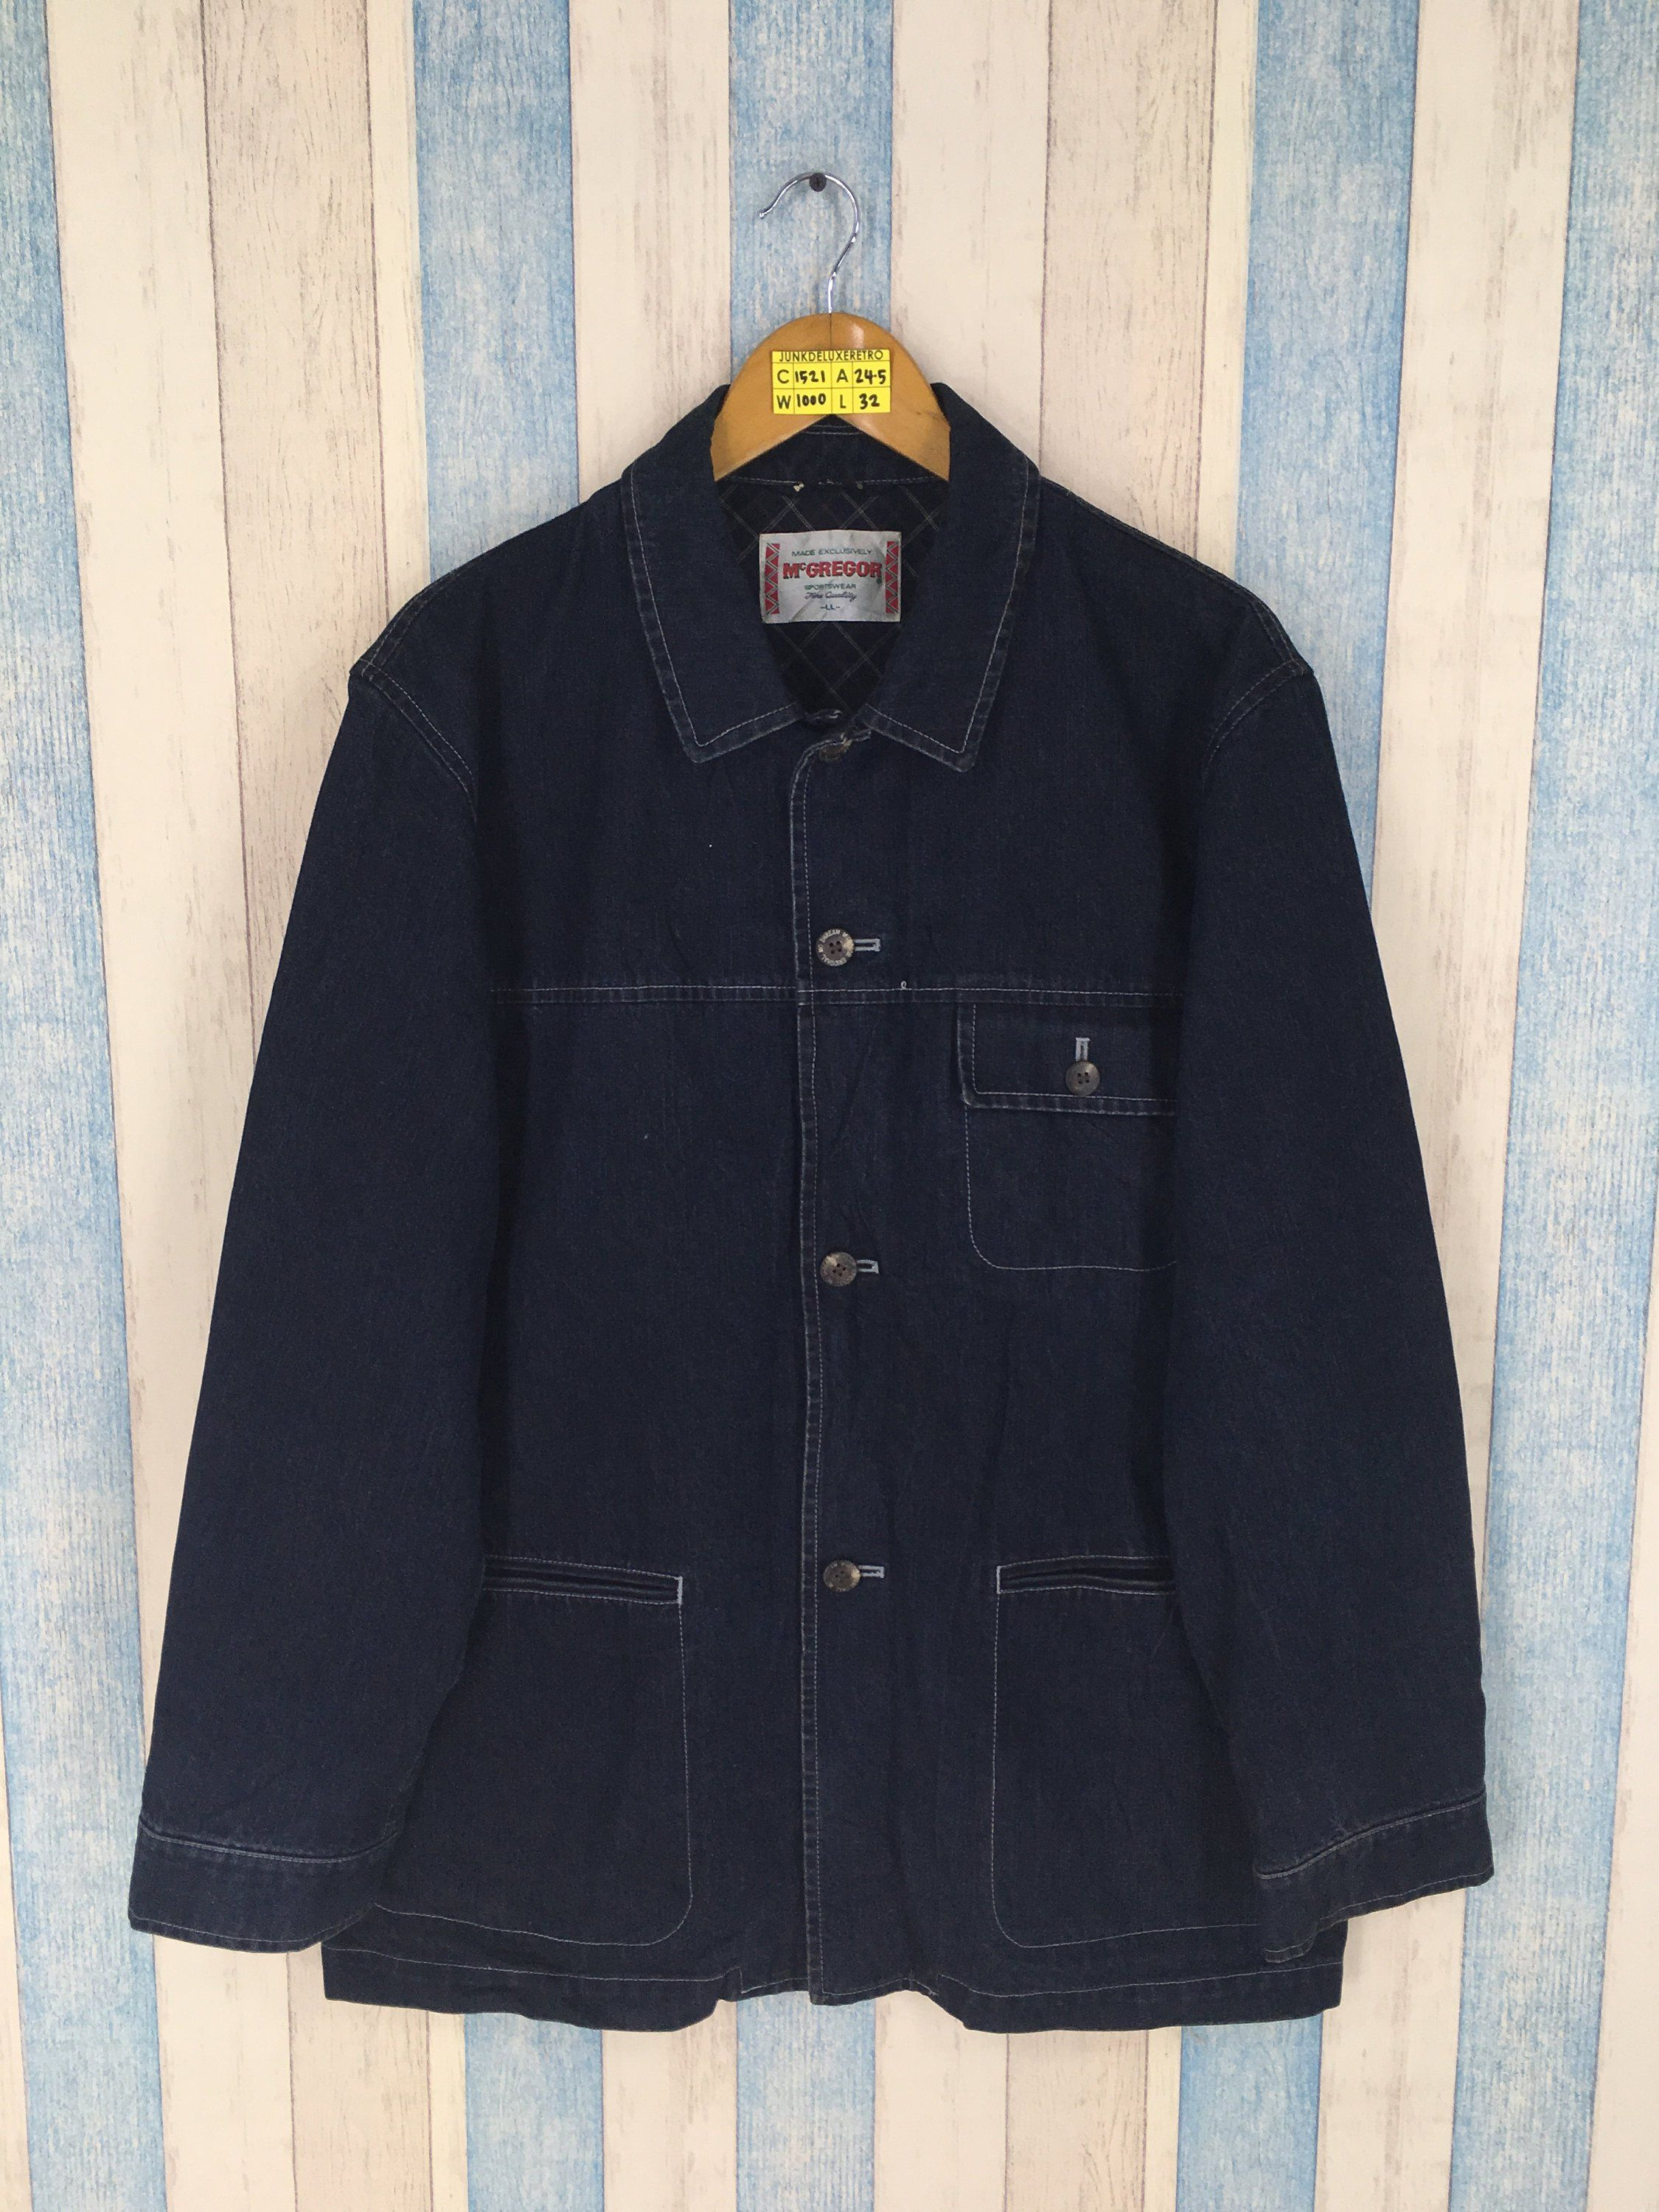 f6cd98fb2fd MCGREGOR Denim Workers Jeans Jacket Black Large Vintage 90 s Workwear Barn  Field Denim Union Made Style